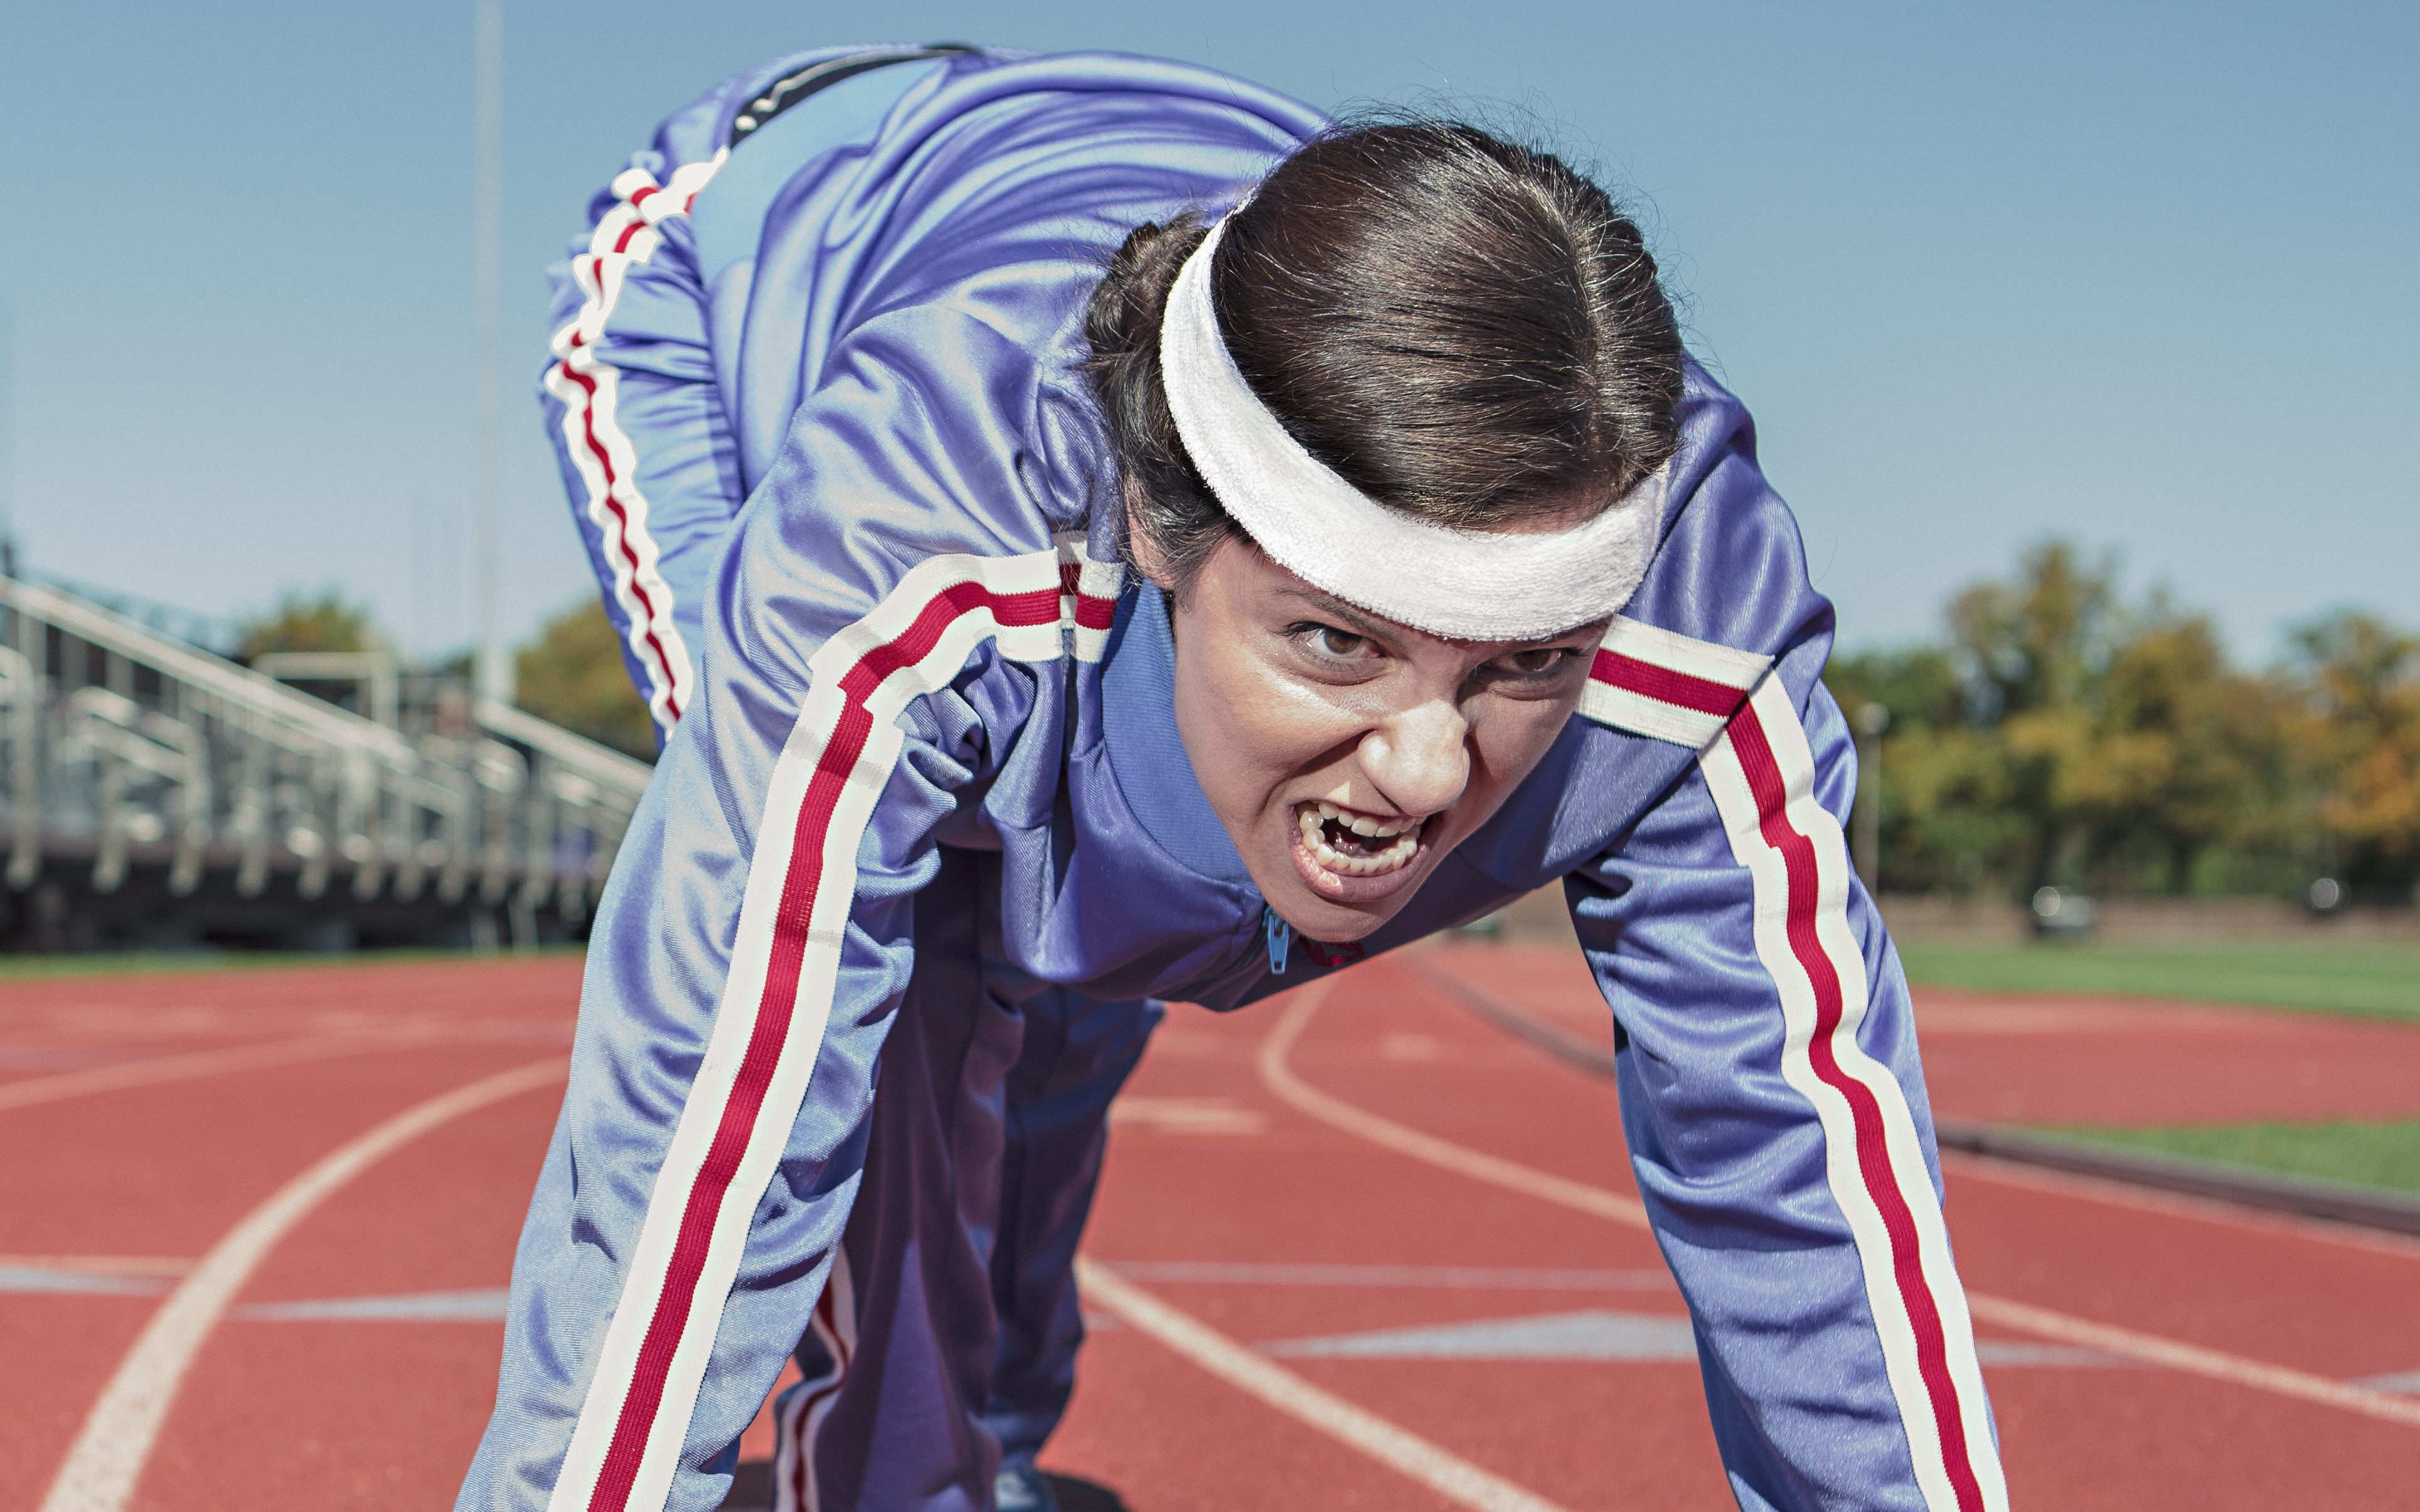 woman in 1970s retro tracksuit on race track about to sprint